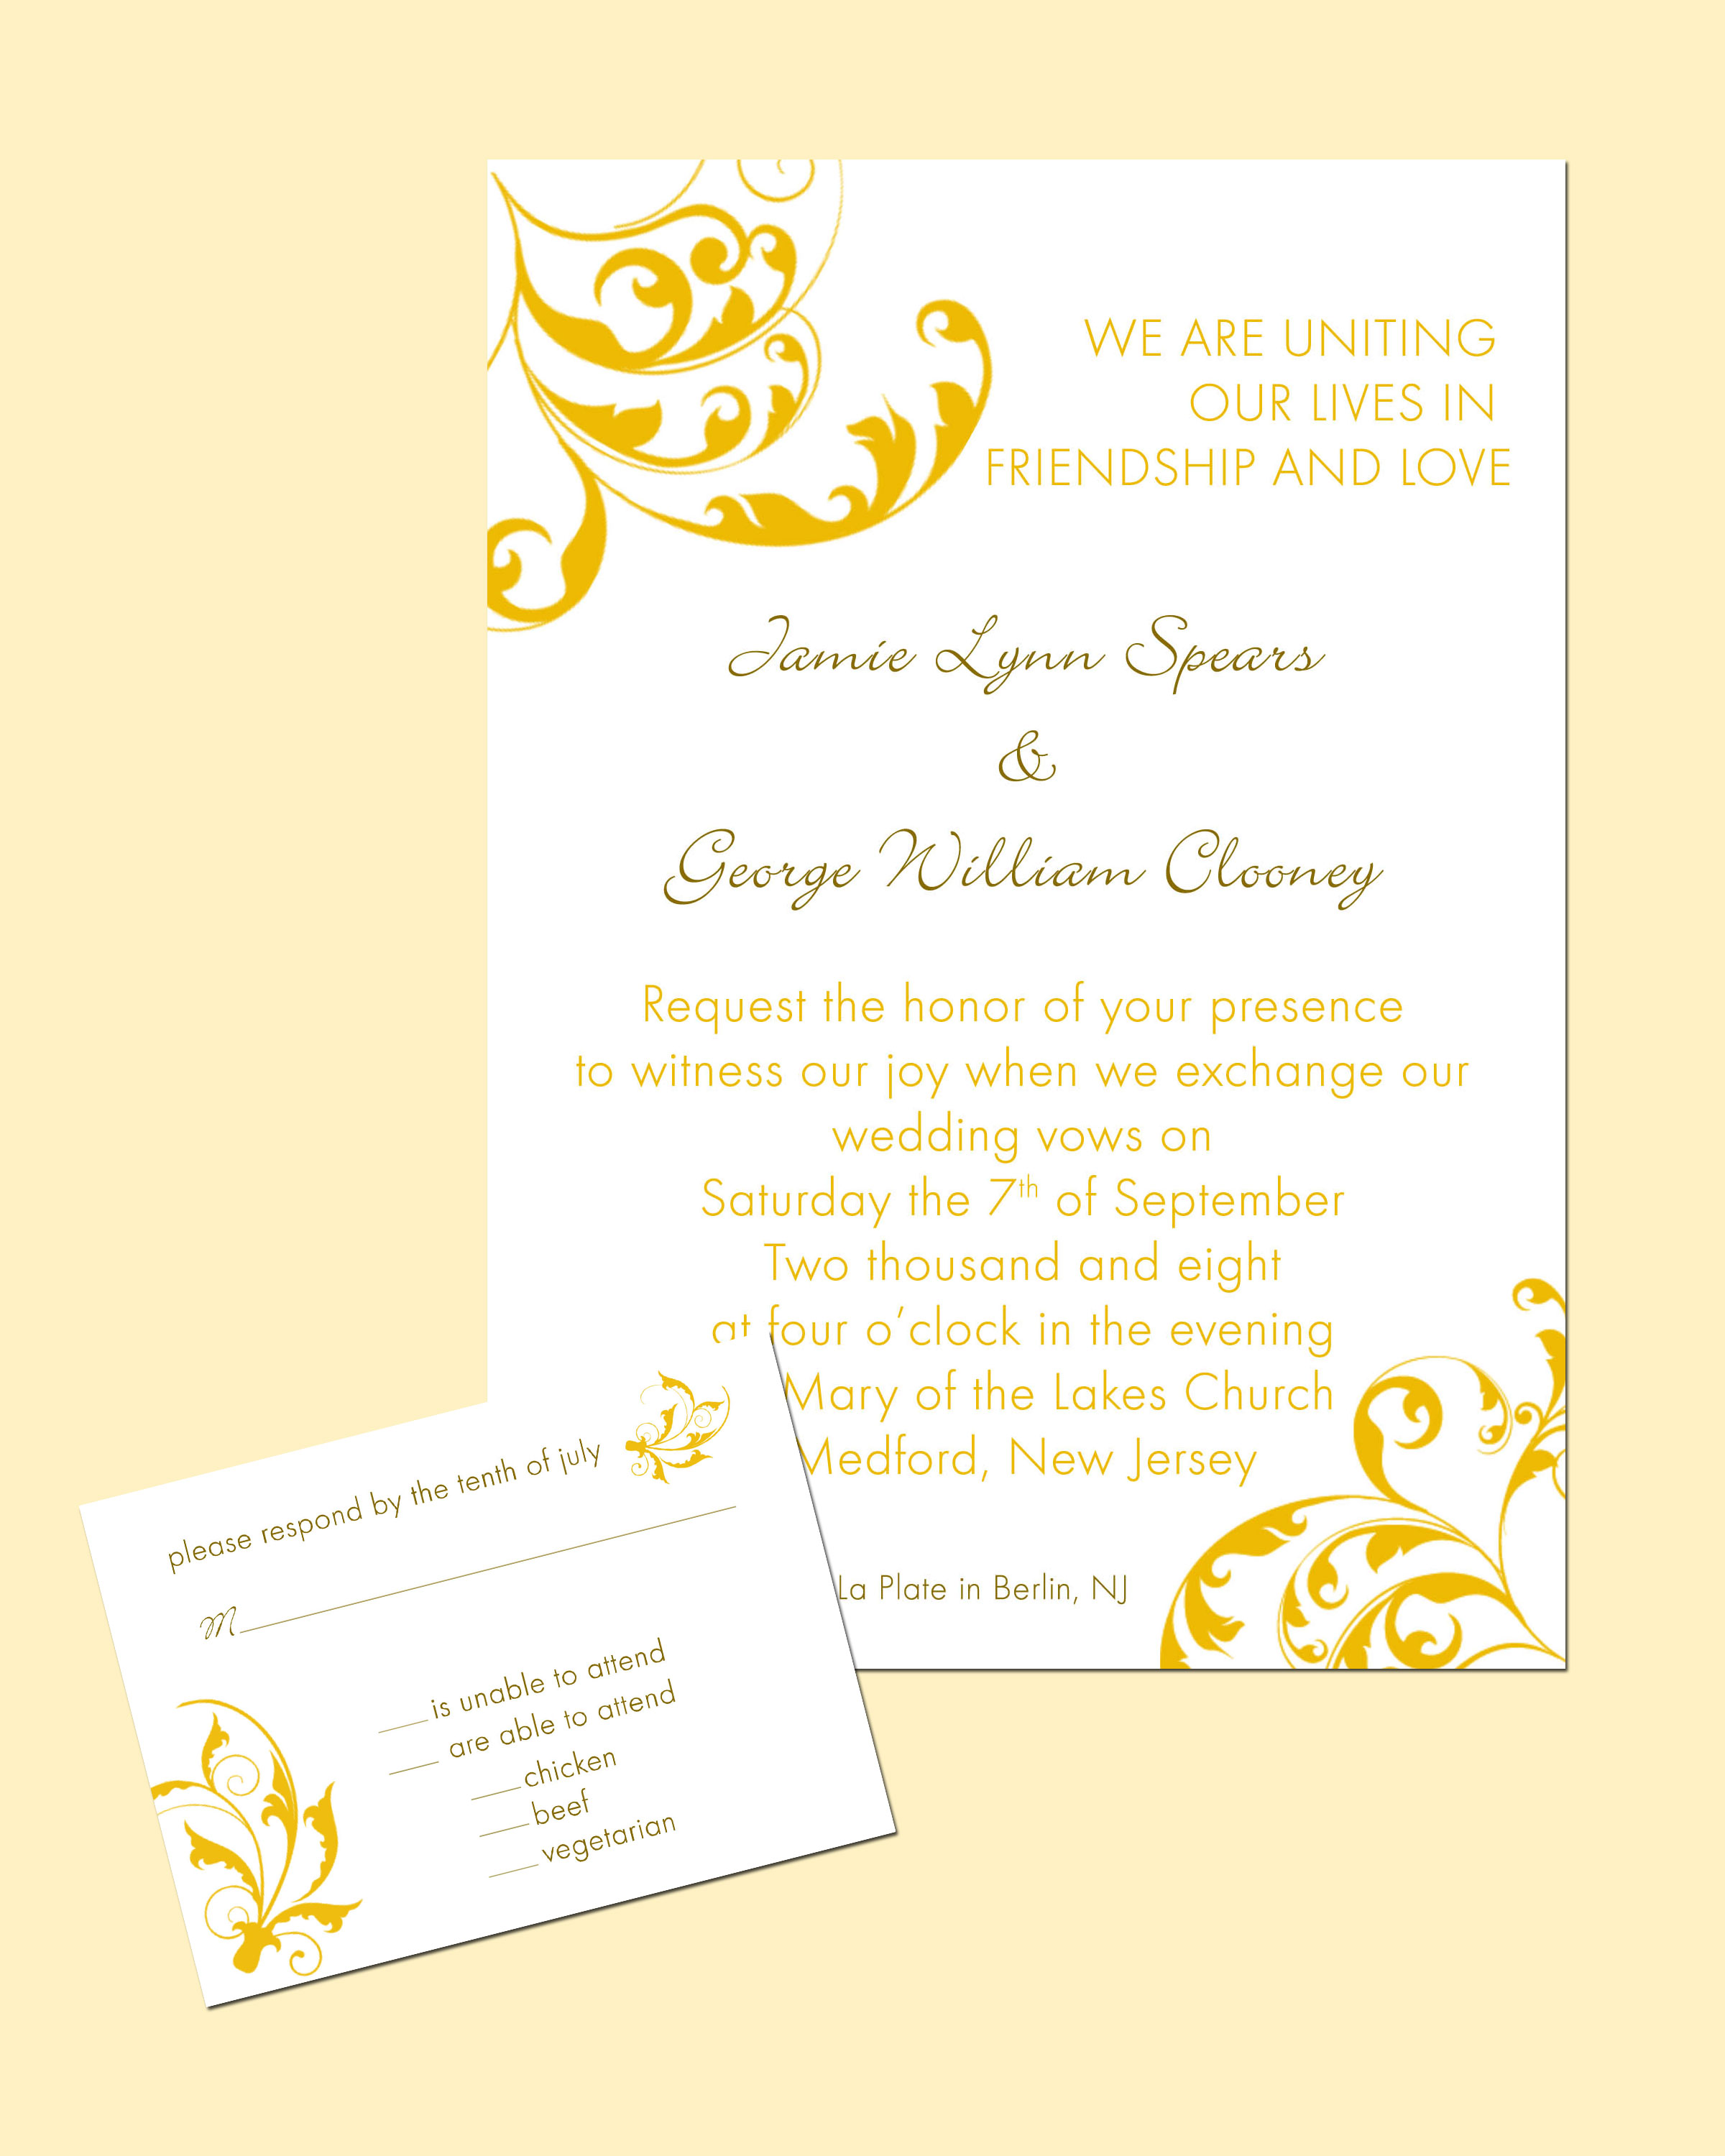 13 wedding invitation designs images - 28 images - 13 absolutely ...